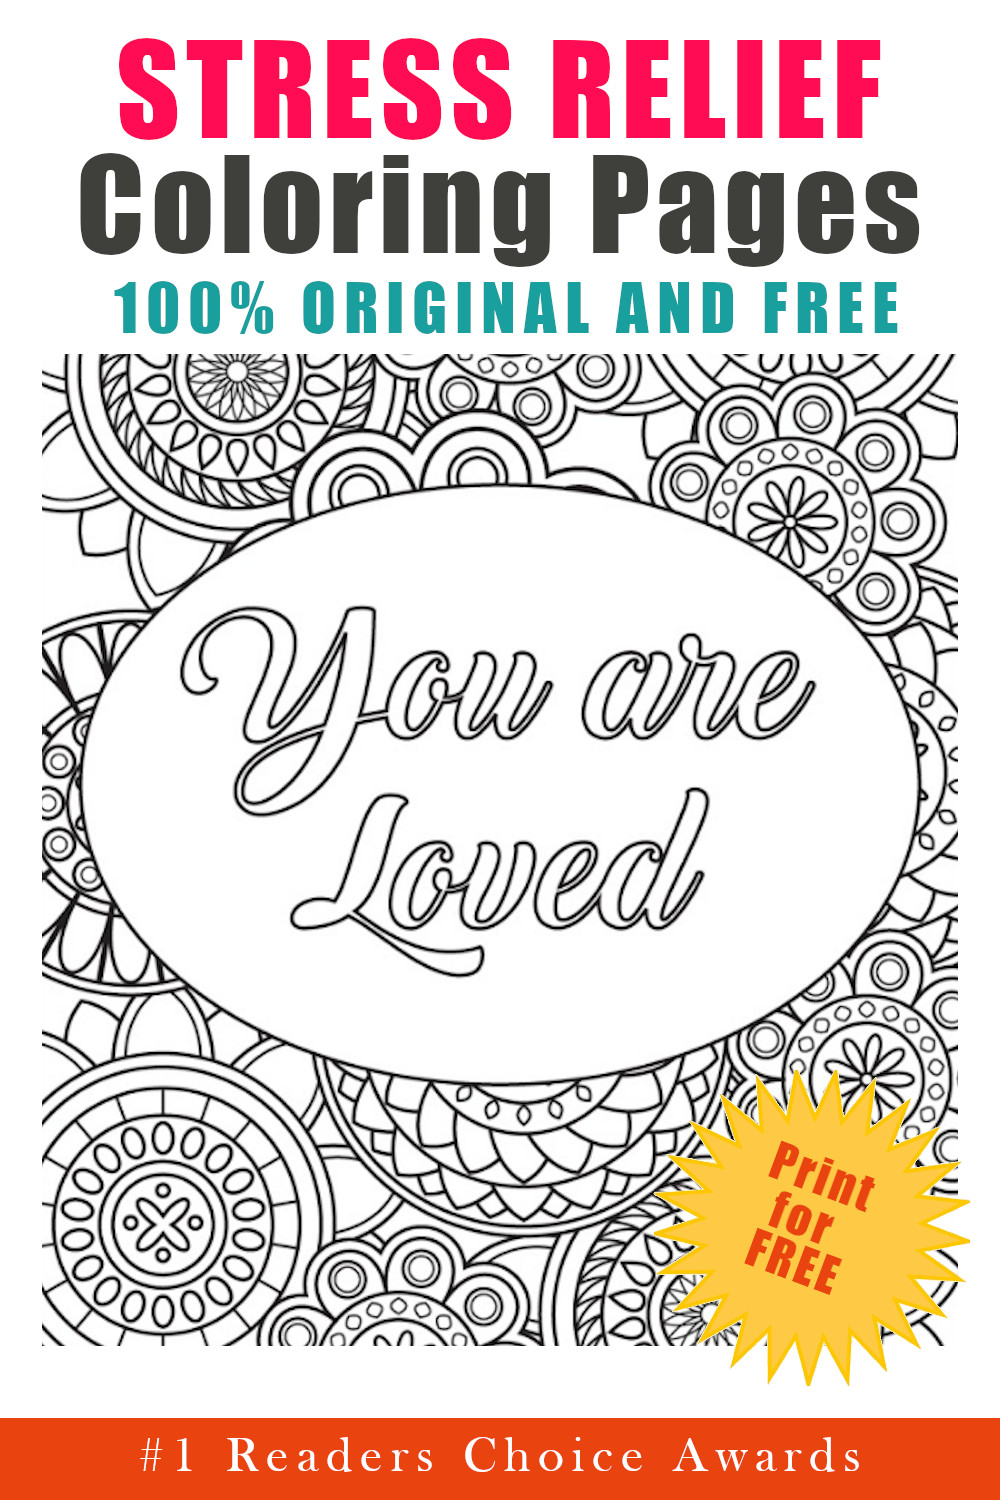 original and free stress relief coloring pages